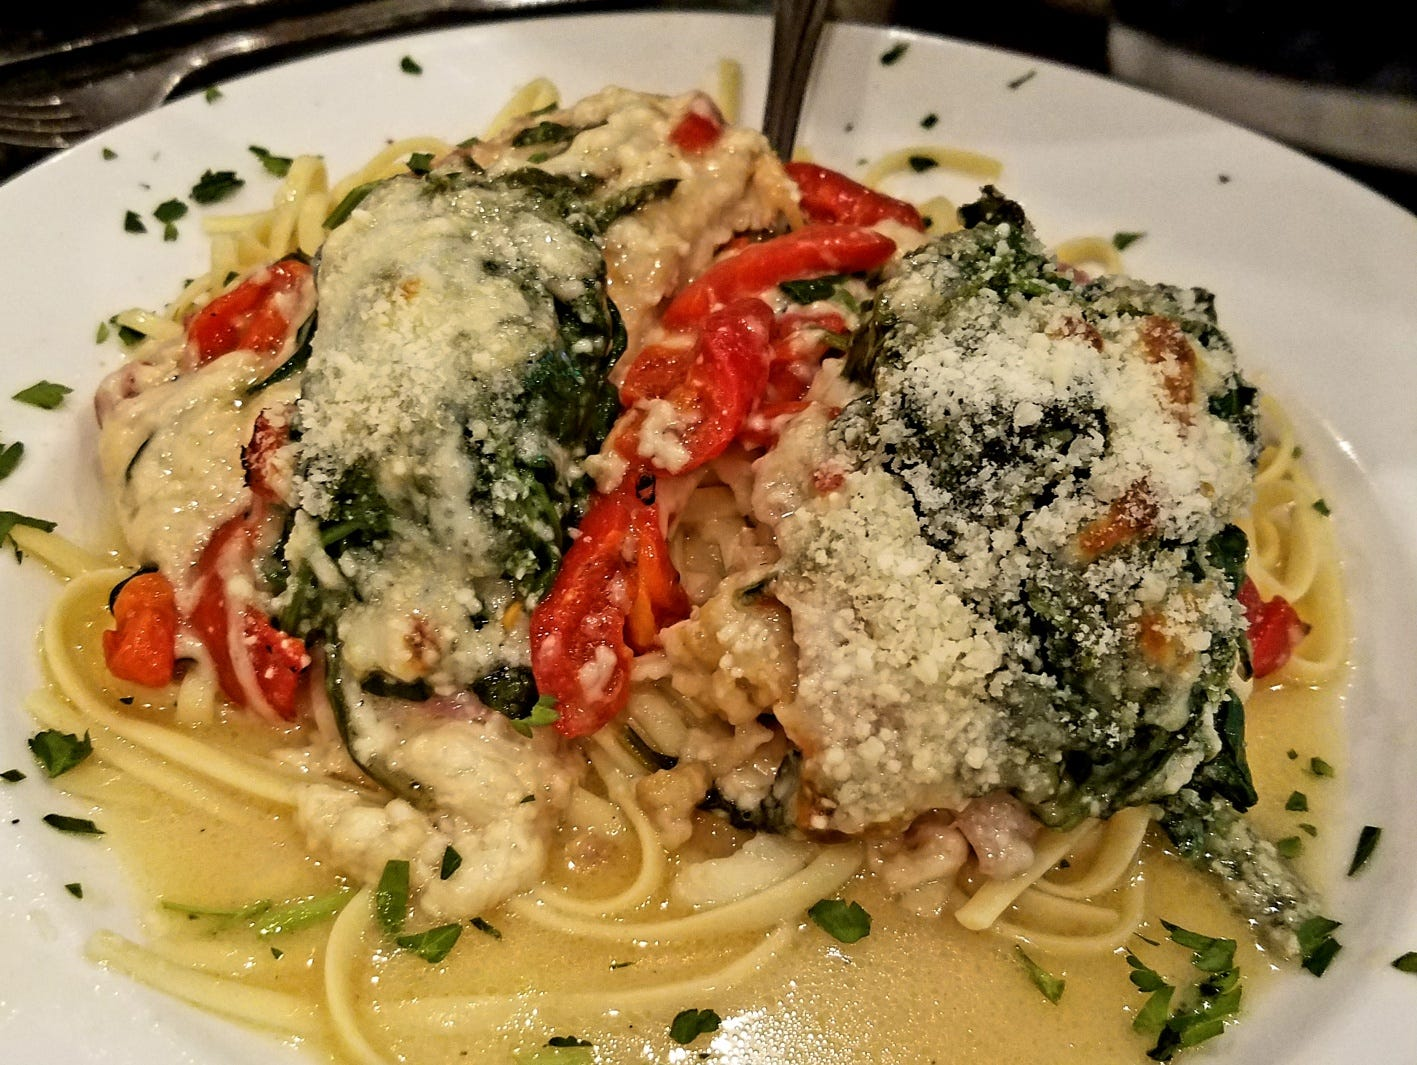 The chicken saltimbocca was perfectly sauteed what is the best dish of the evening.